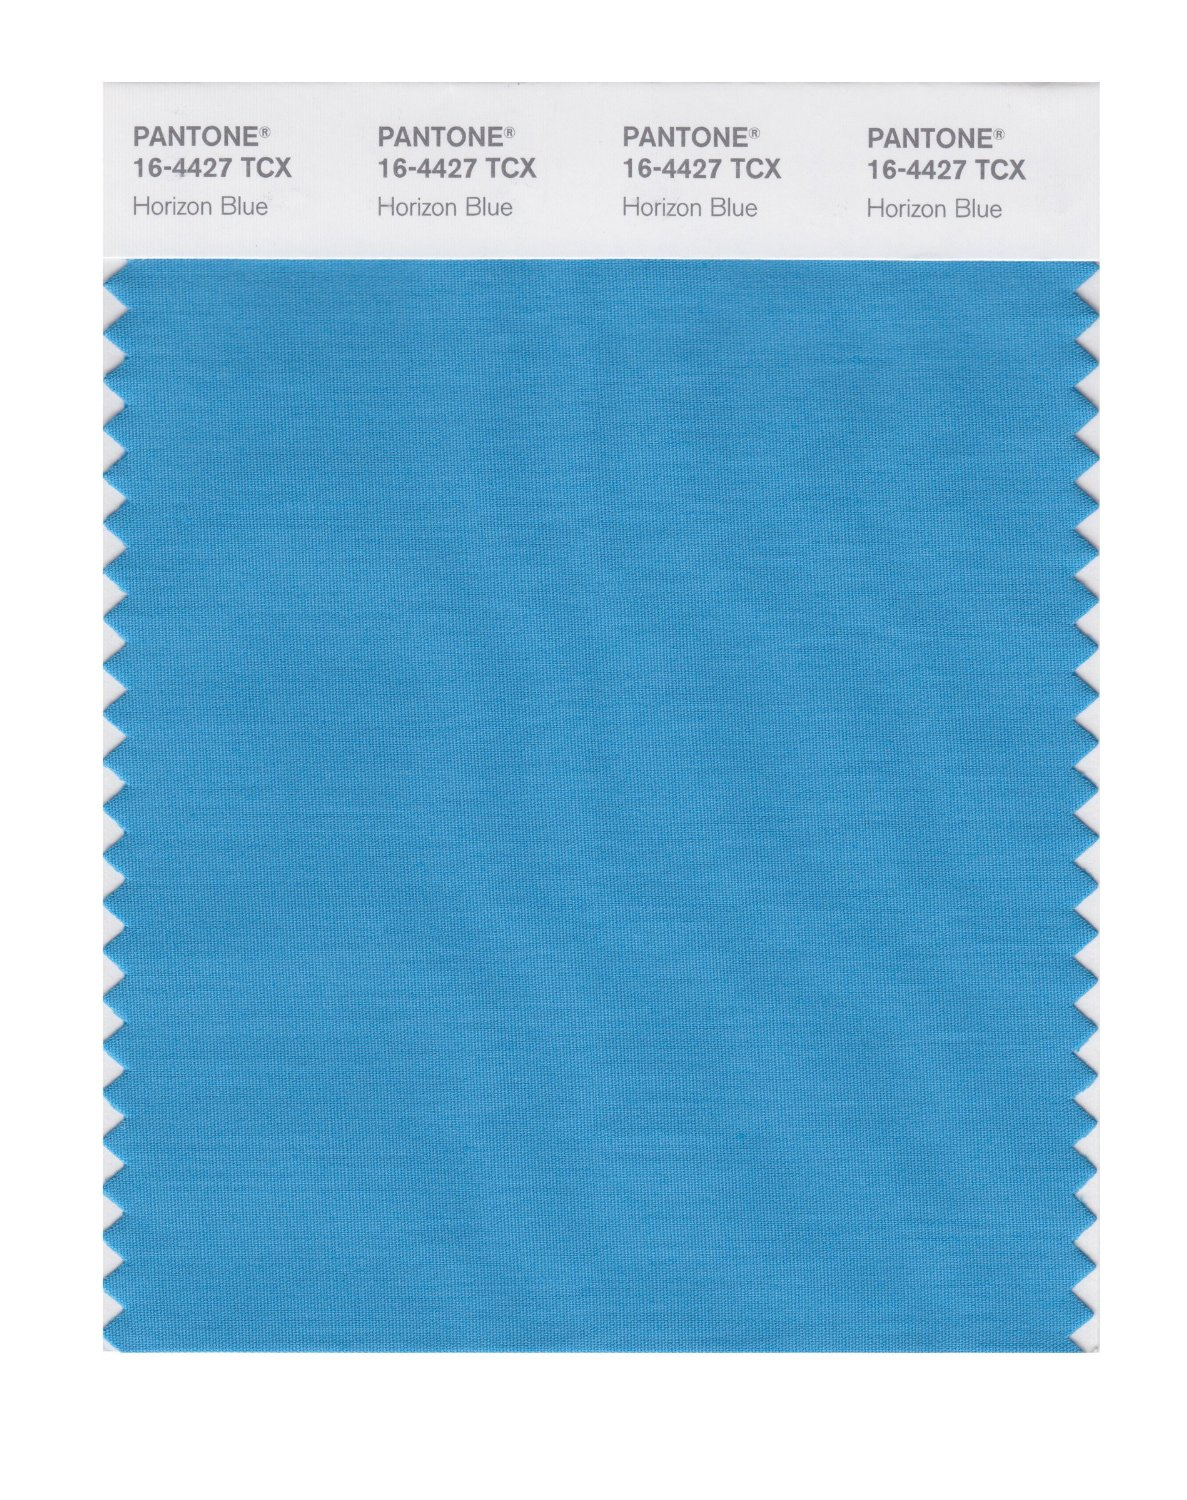 Pantone Smart Swatch 16-4427 Horizon Blue